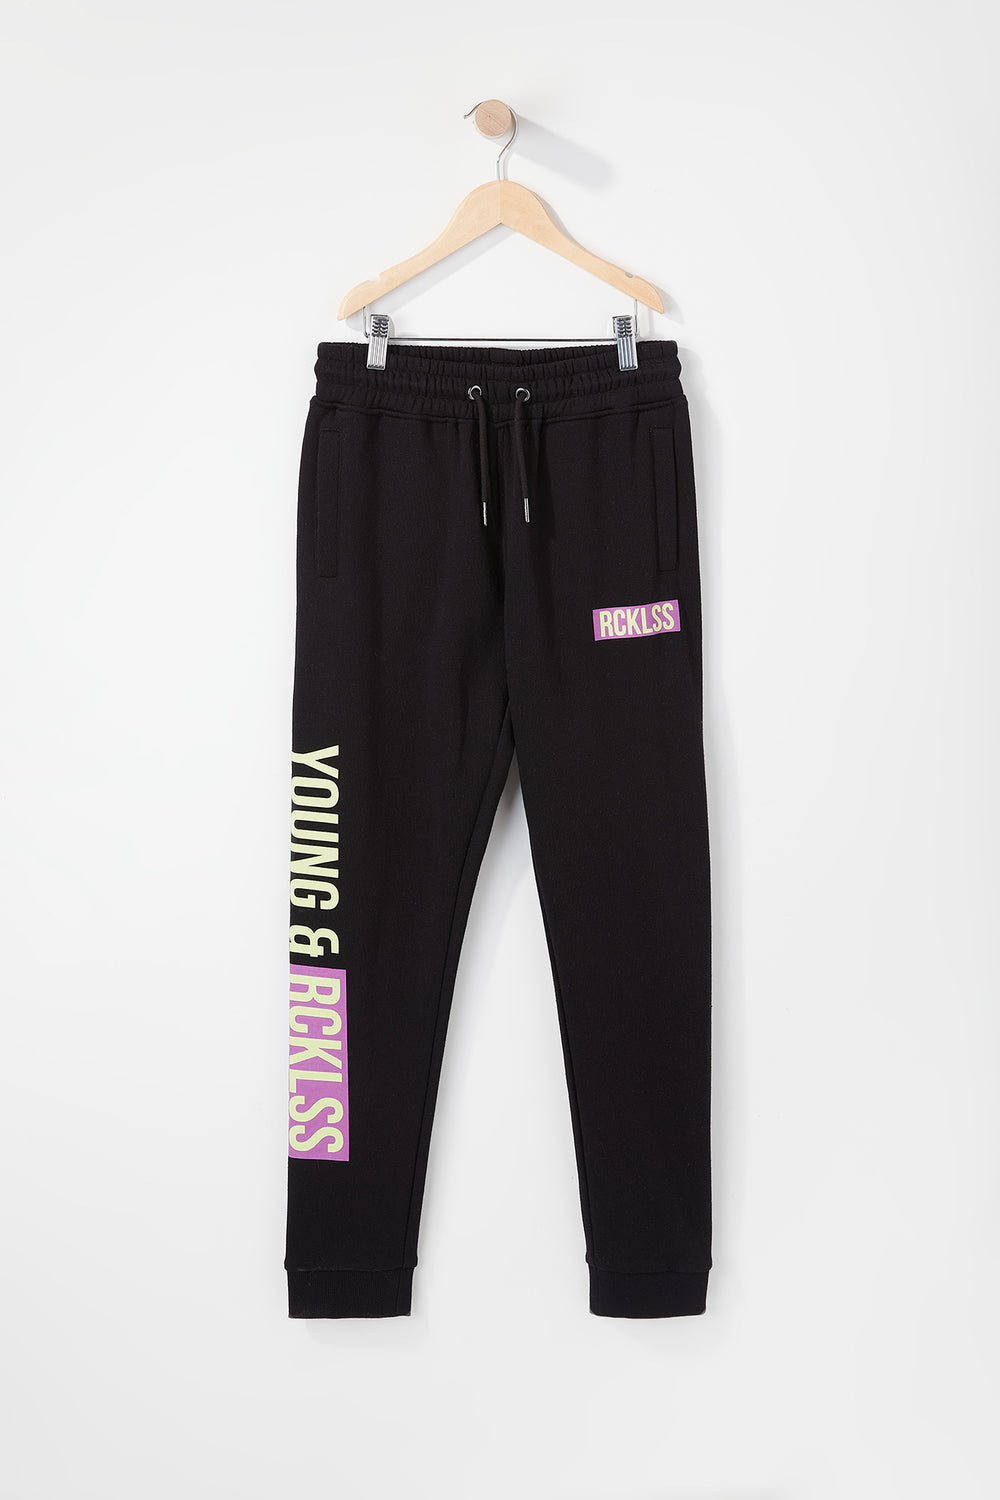 Young & Reckless Boys Neon Jogger Black